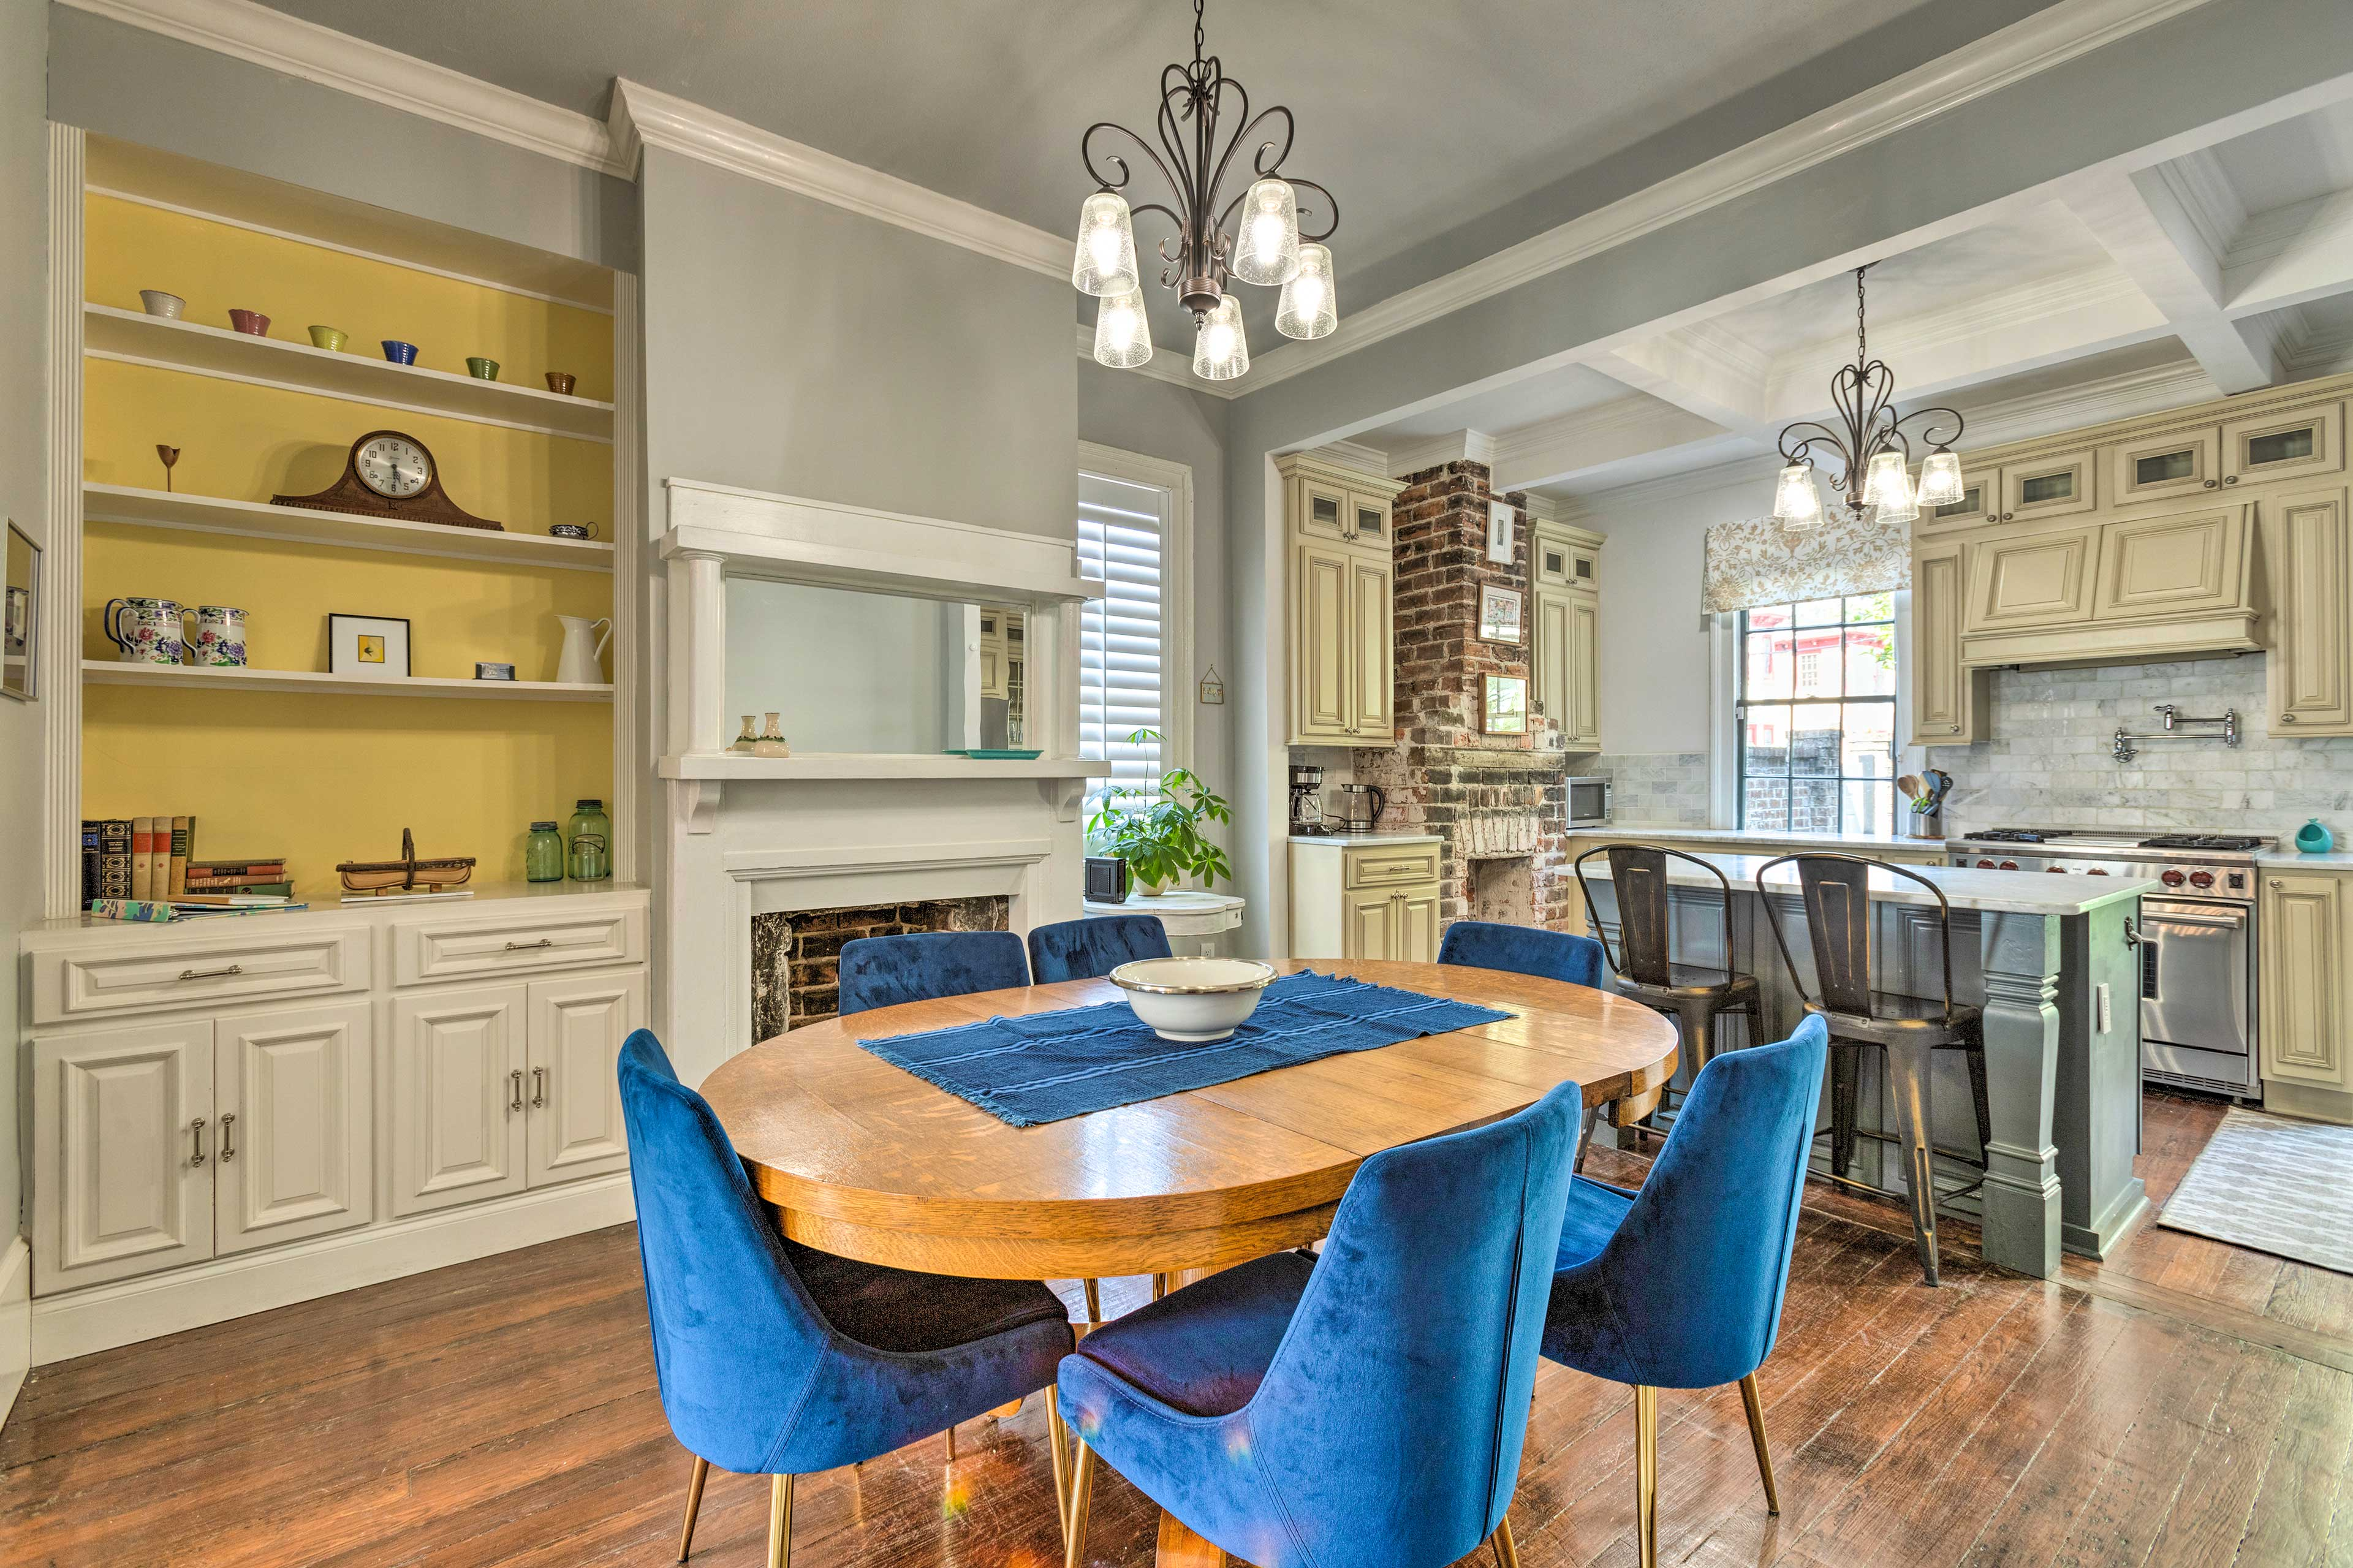 Gather around the dining table to share home-cooked meals with your group of 4.